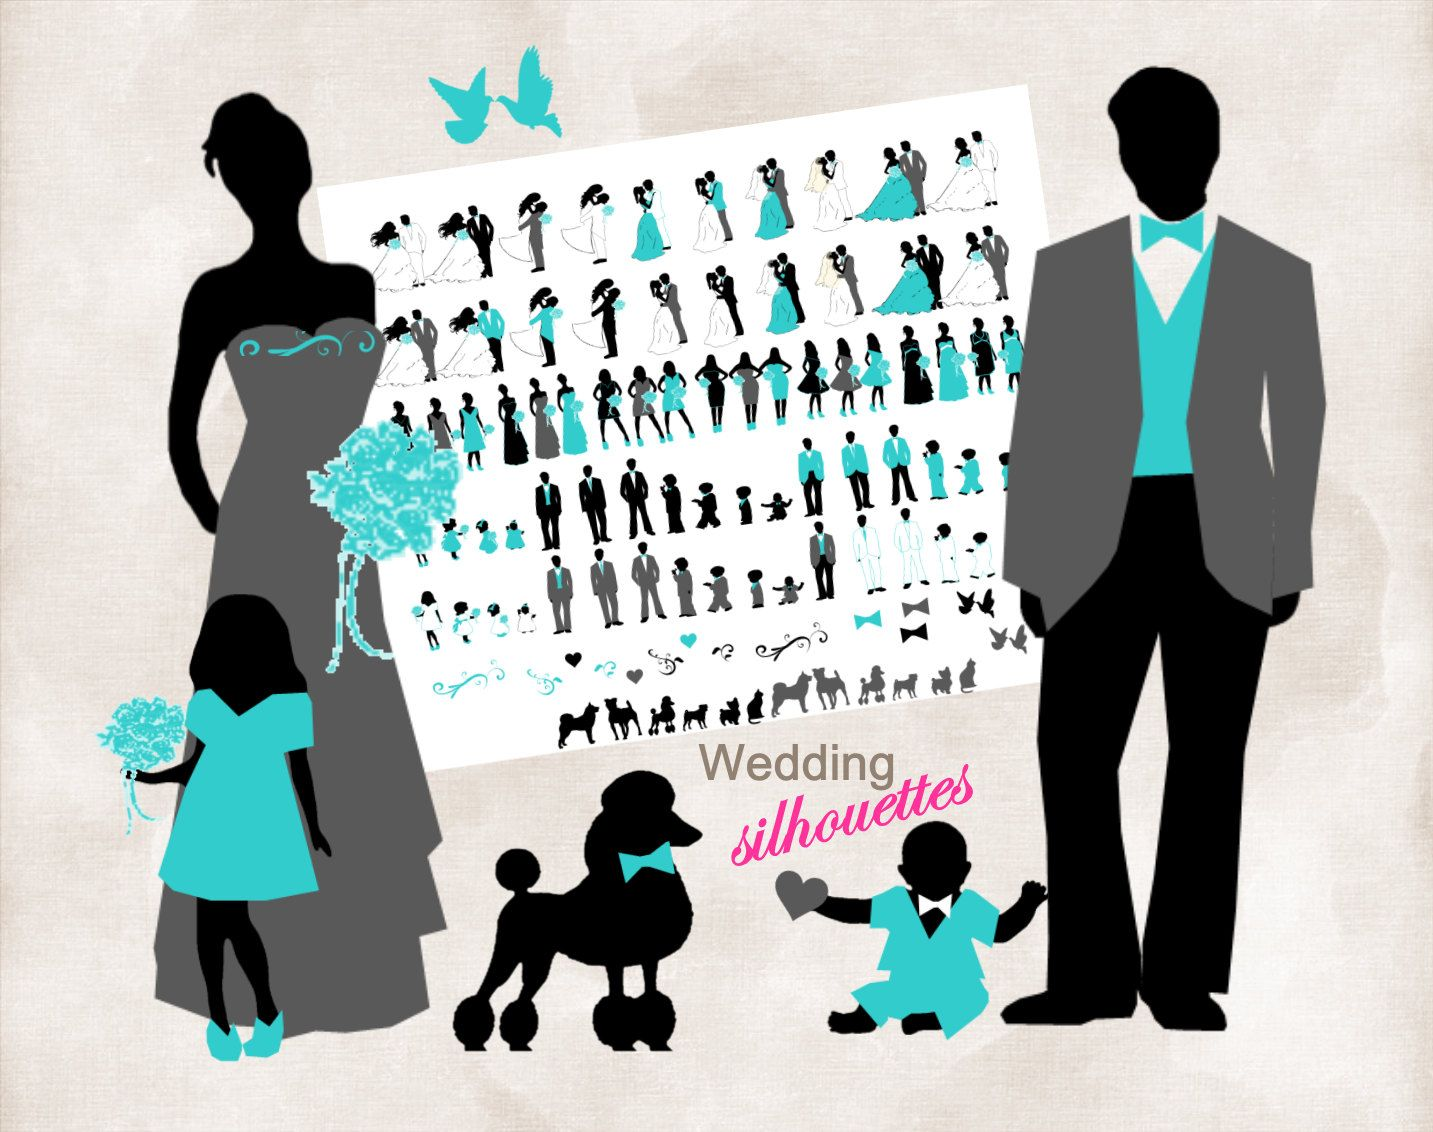 Silhouette wedding bridal party 102 Silhouettes clipart